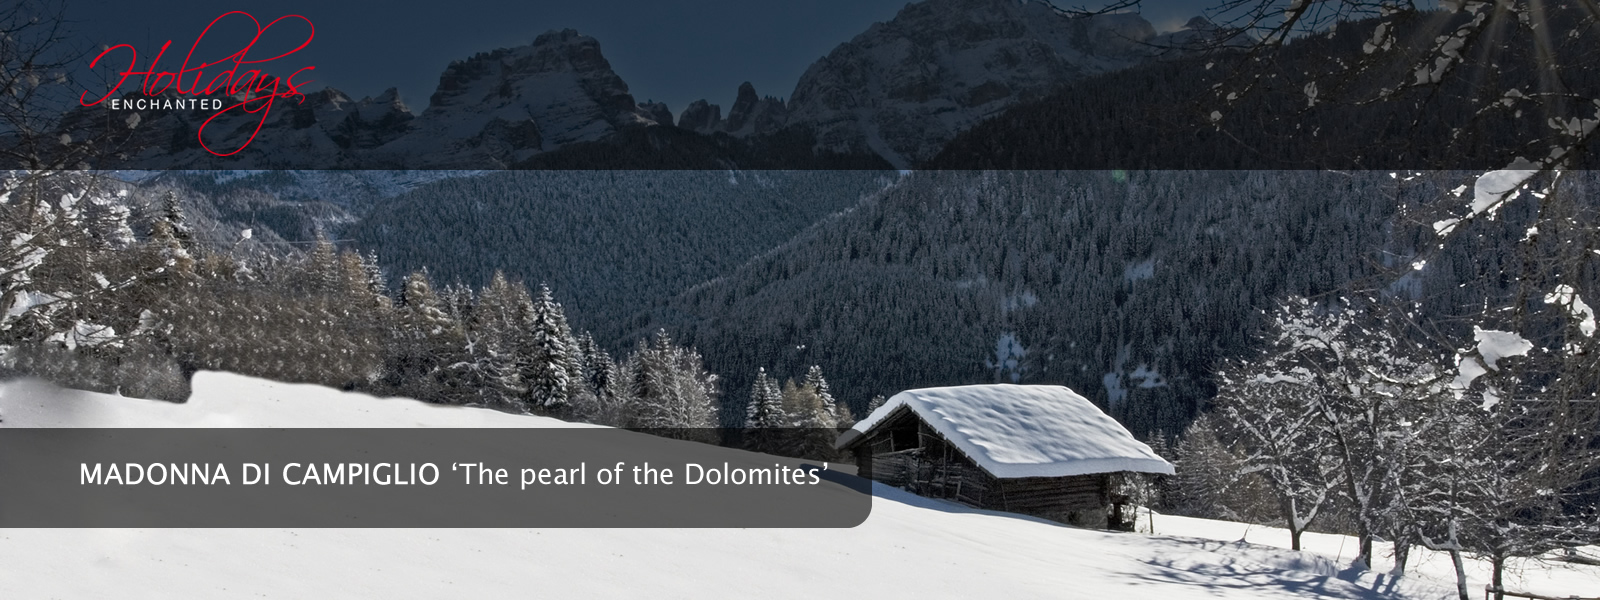 Up in the Dolomite Mountains at Madonna di Campiglio